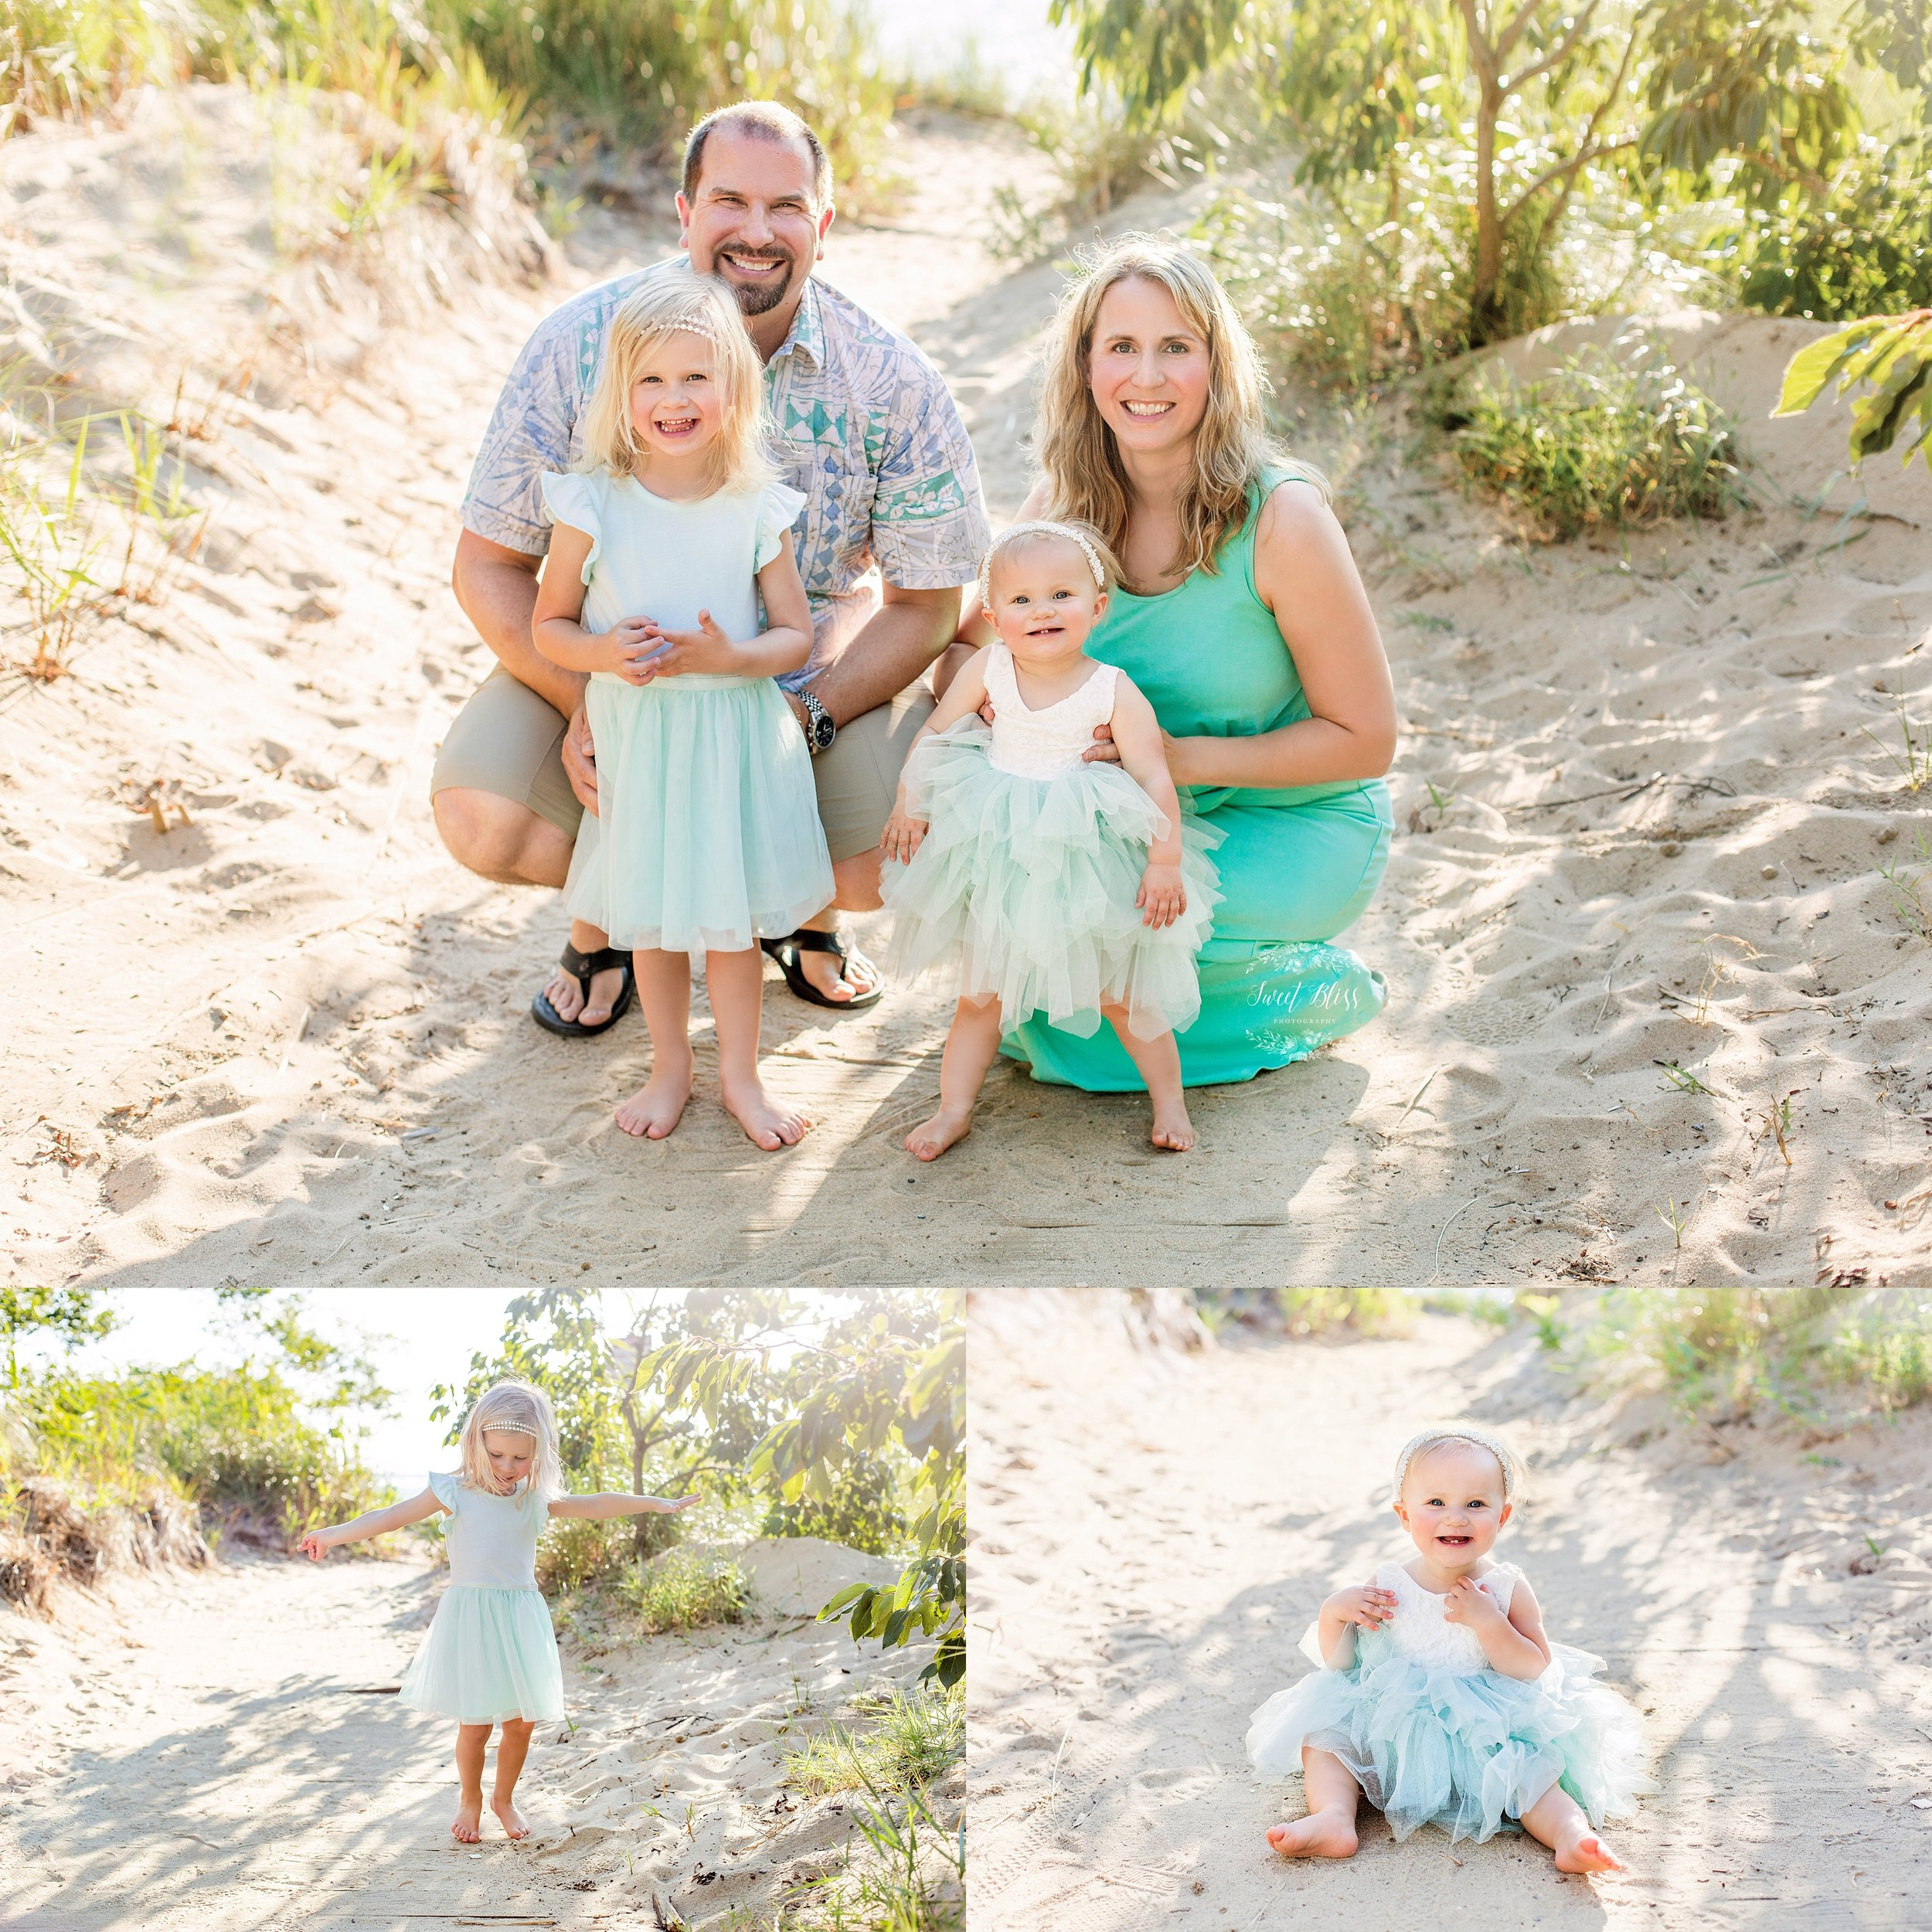 Marylandbabyphotographer_cakesmash_Beach-7.jpg